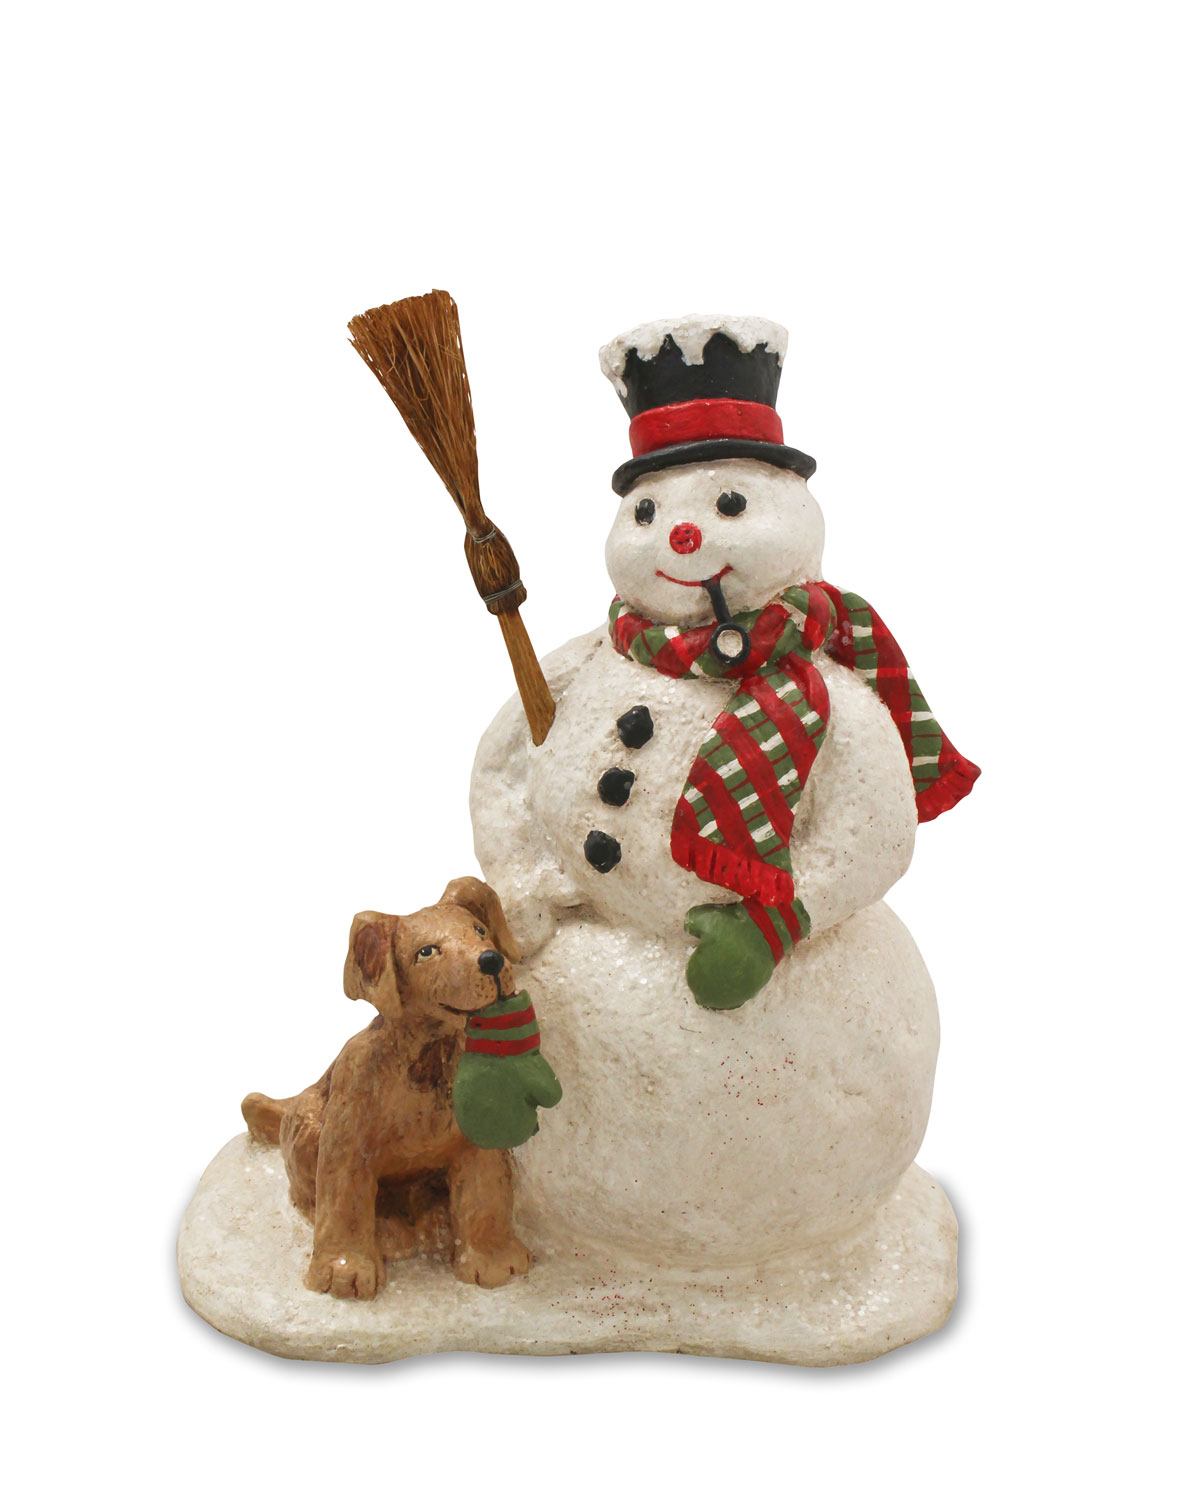 Christmas Statue Decorations: Bethany Lowe Snowman And Dog Christmas Decor Statue